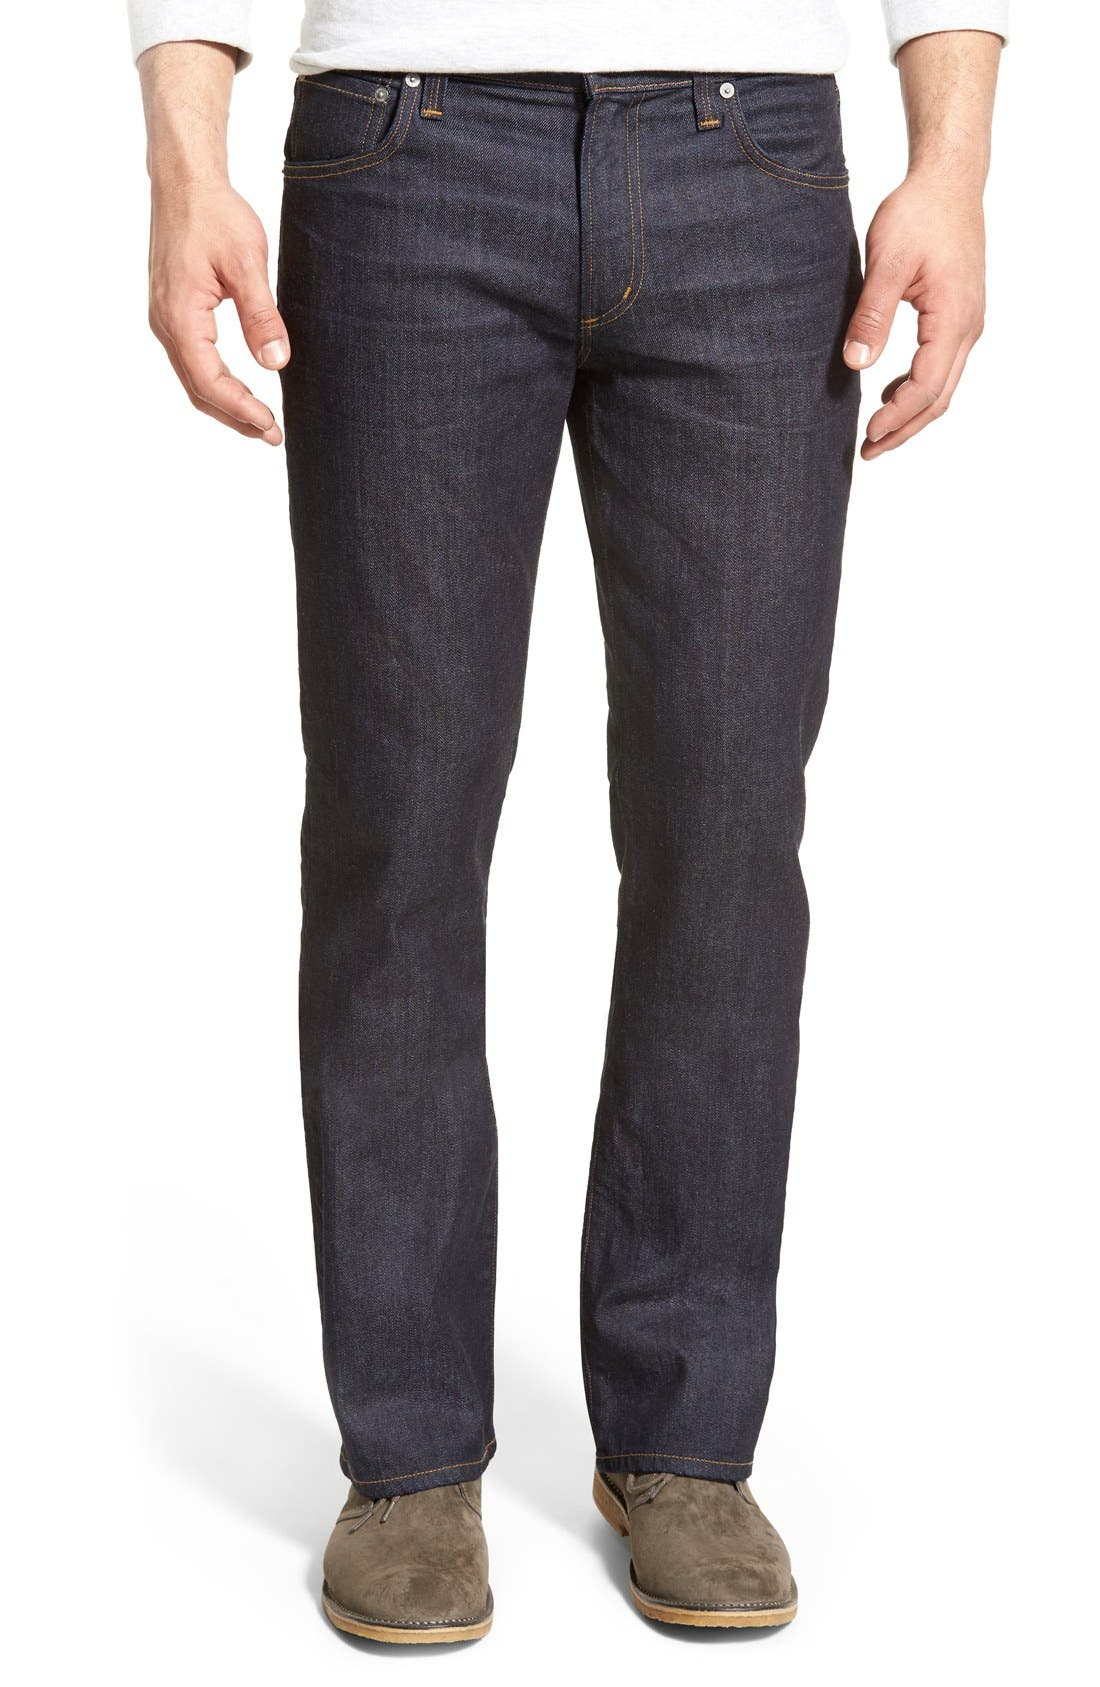 Citizens of Humanity Bootcut Jeans (Lafayette)